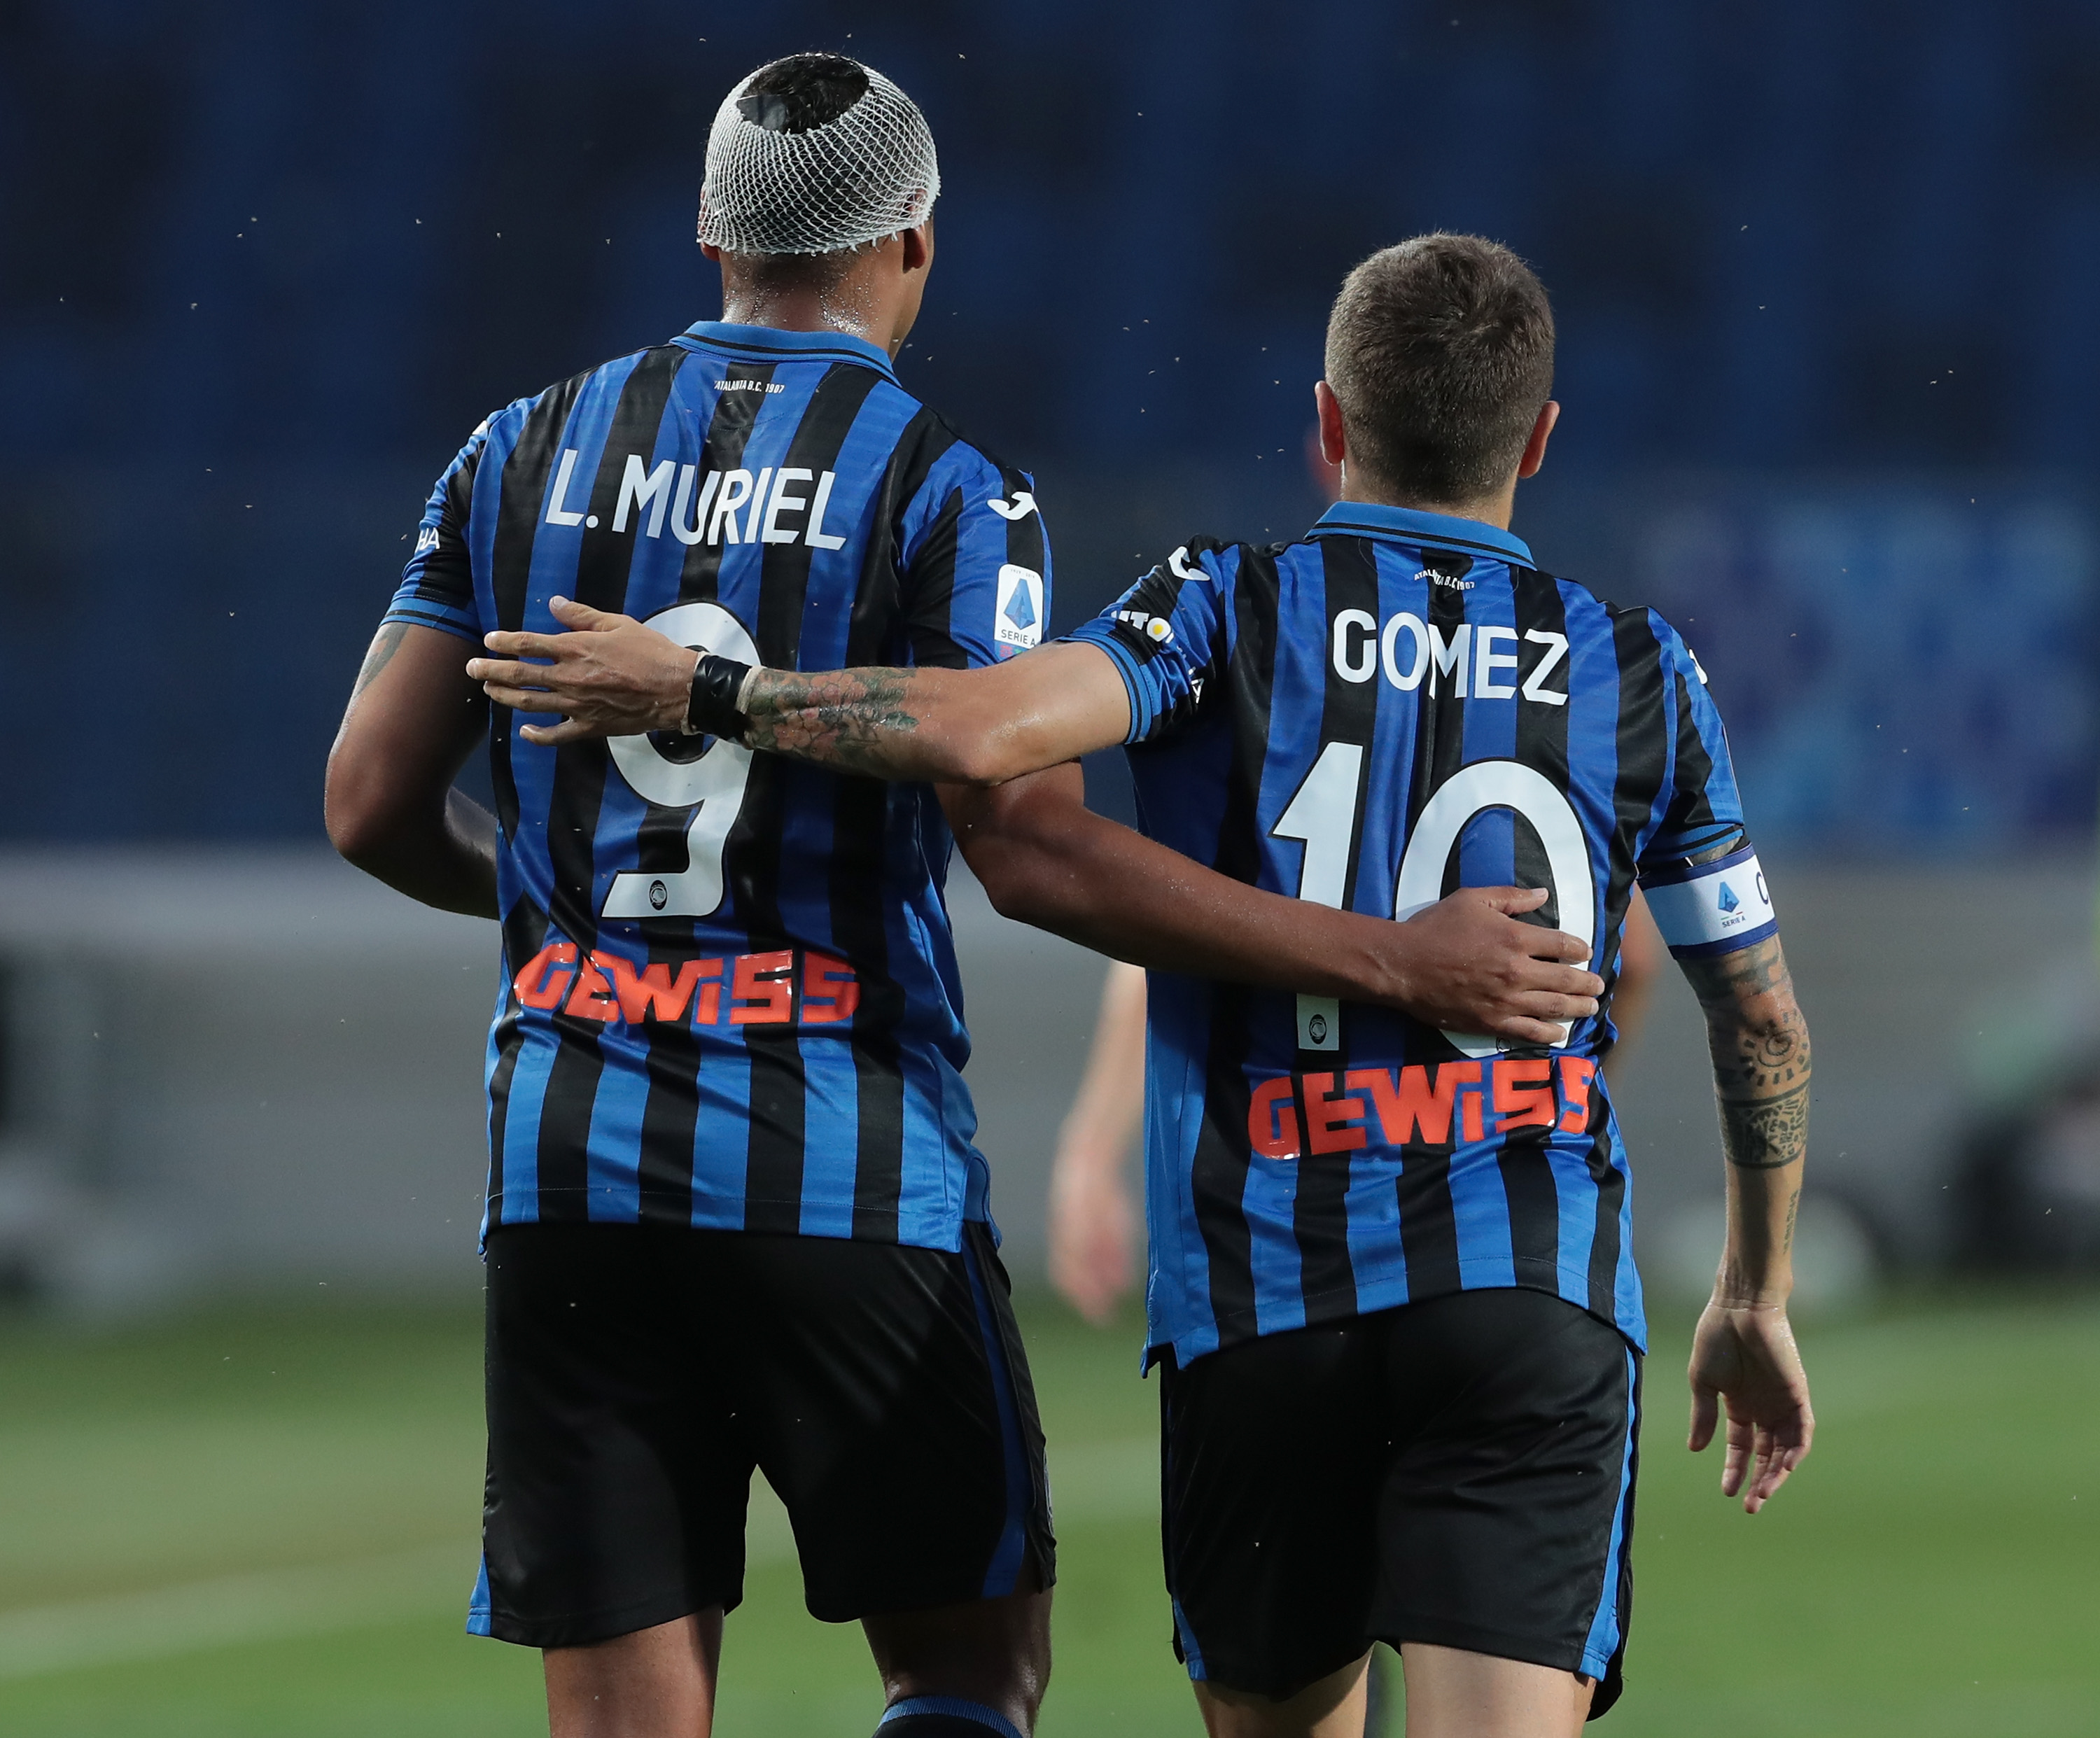 The city was at the epicenter of Europe's pandemic. Now its soccer club Atalanta wants to 'bring a smile' back to 'damaged' region